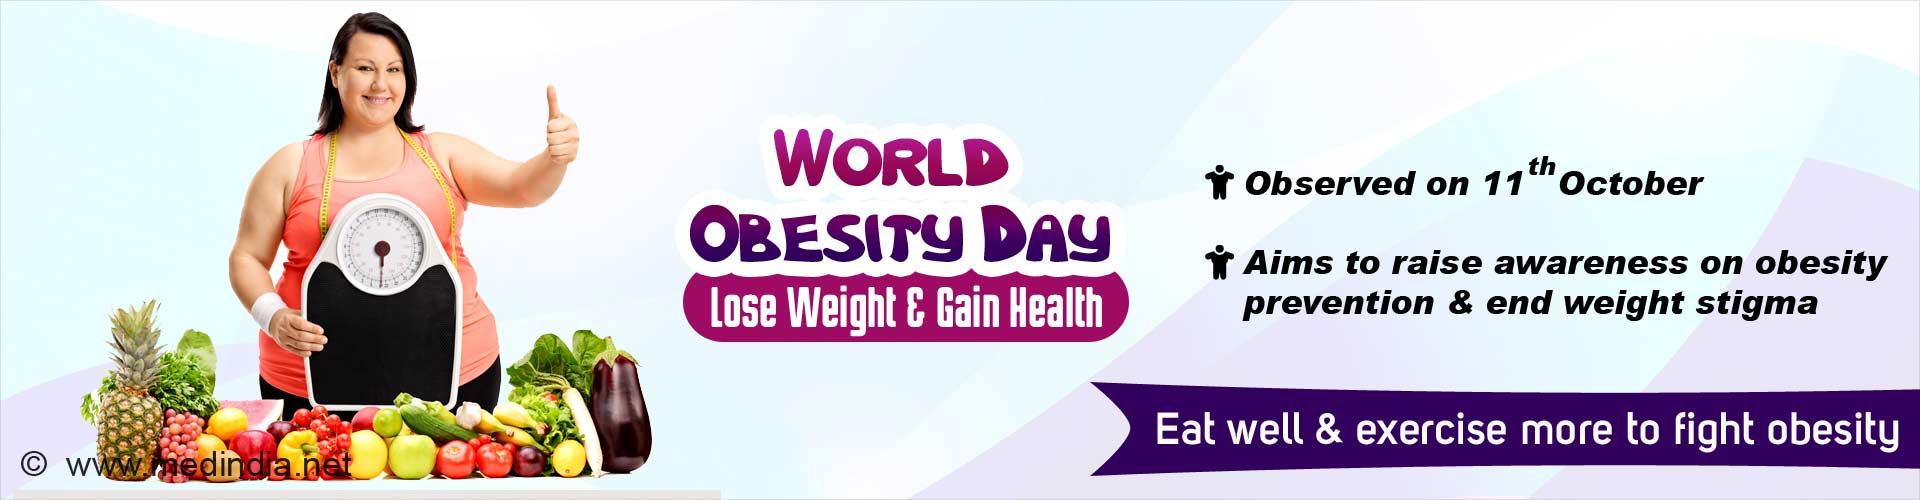 World Obesity Day - Time to Take Action